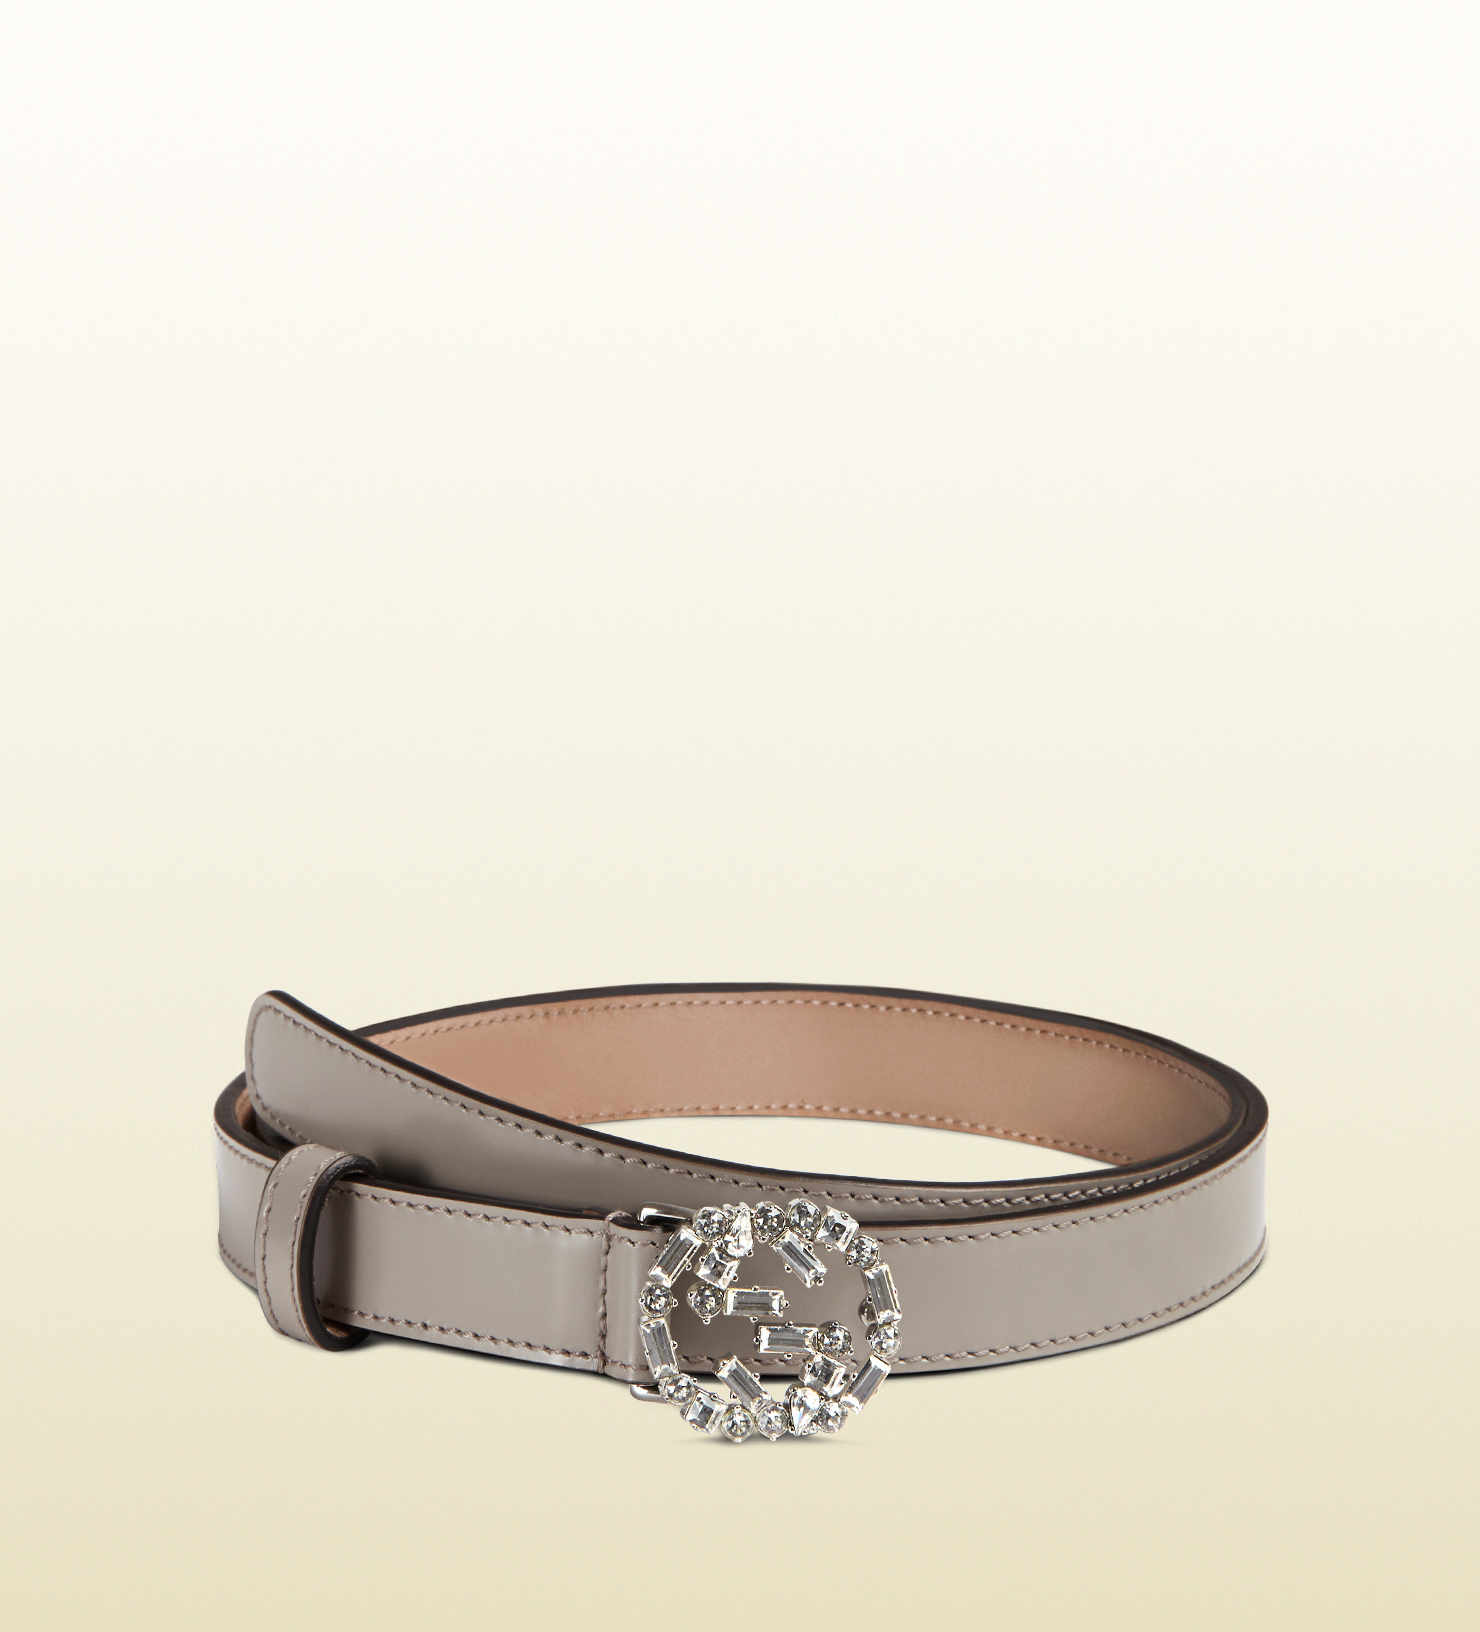 0648db64e284 Lyst - Gucci Thin Leather Belt With Crystal Interlocking G Buckle in ...